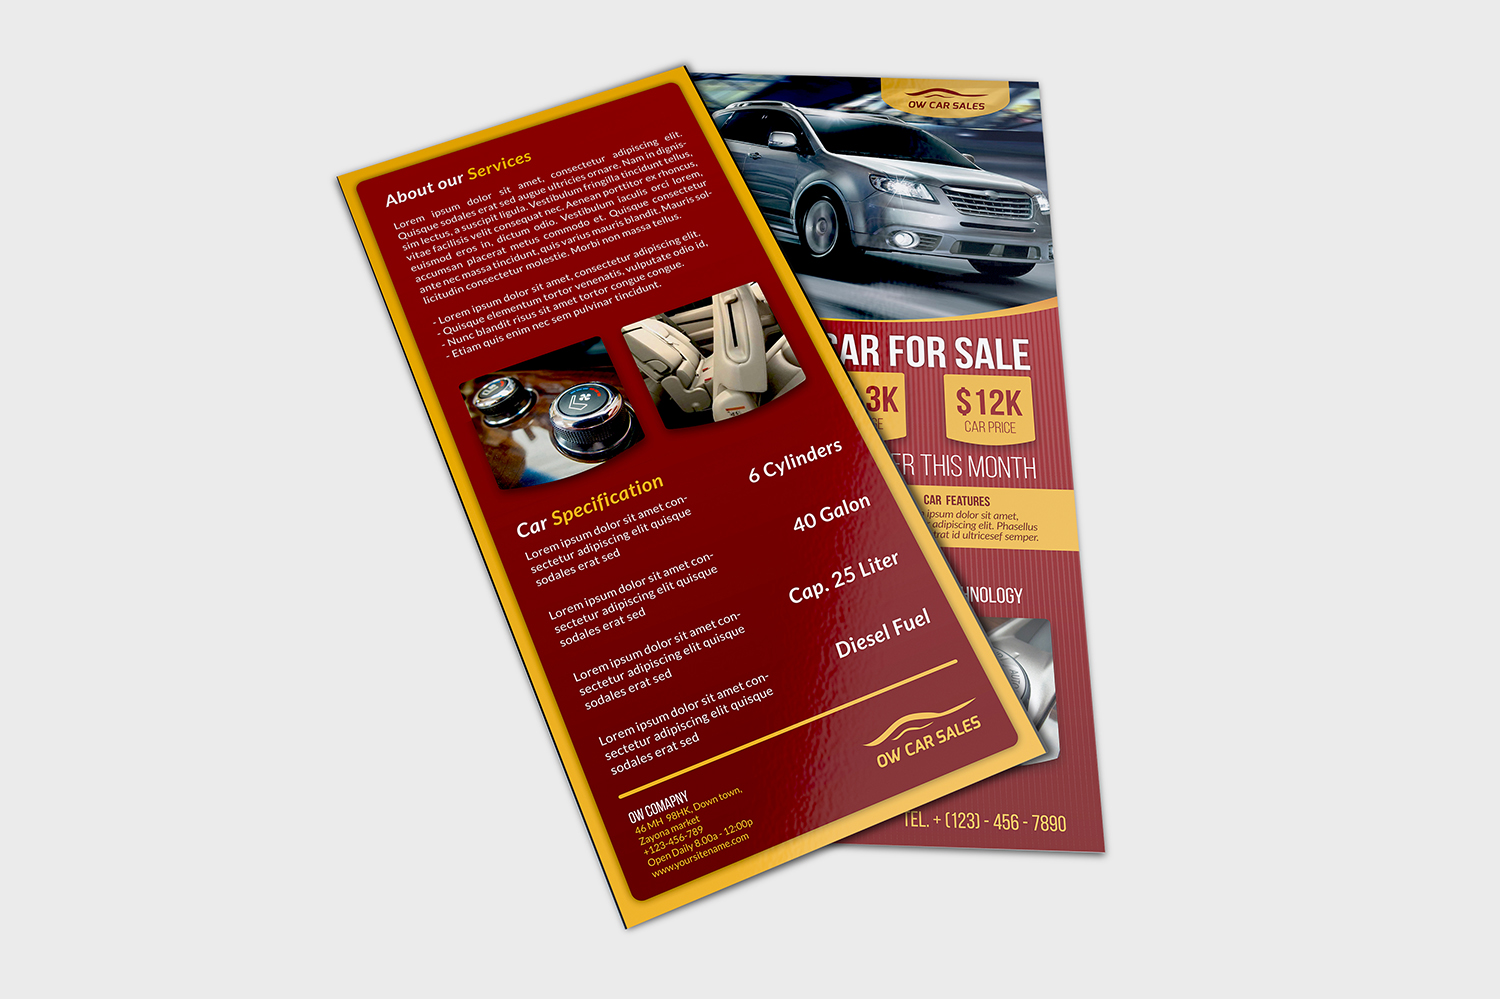 Car for Sale Flyer DL Size Template example image 3